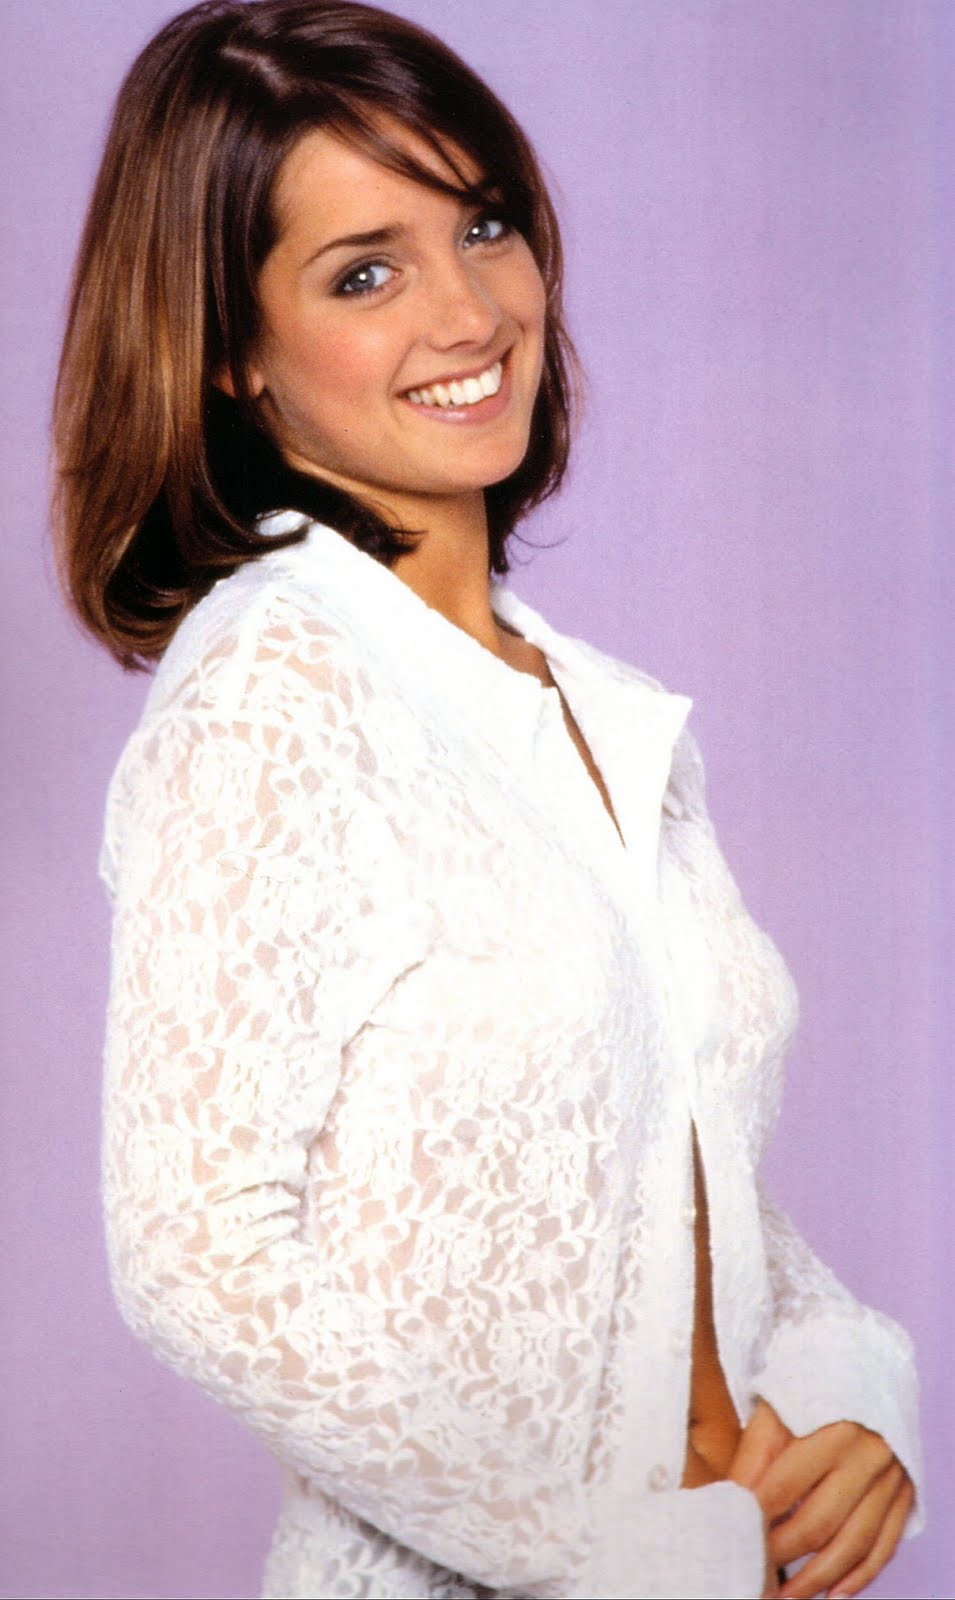 Ladies In Satin Blouses Louise Redknapp More Blouses